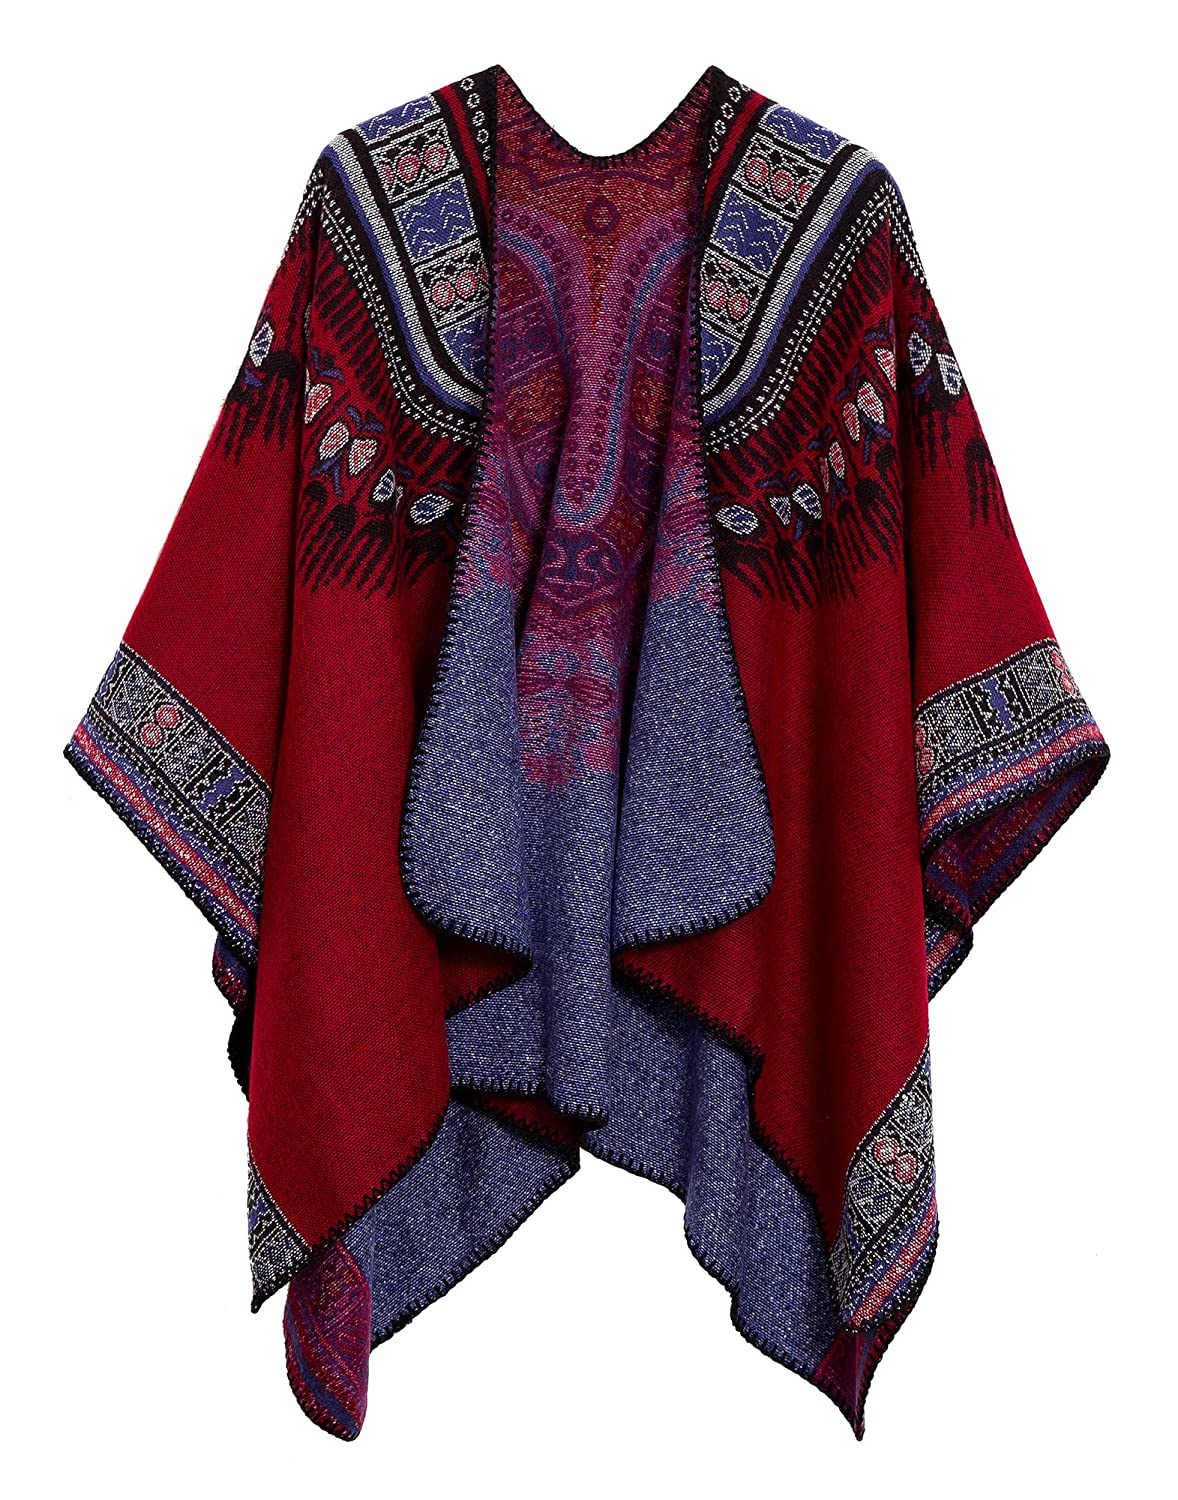 Women's Vintage Pattern Printed Winter Poncho Cape Shawl (Series 2-Grey) RS1902GY